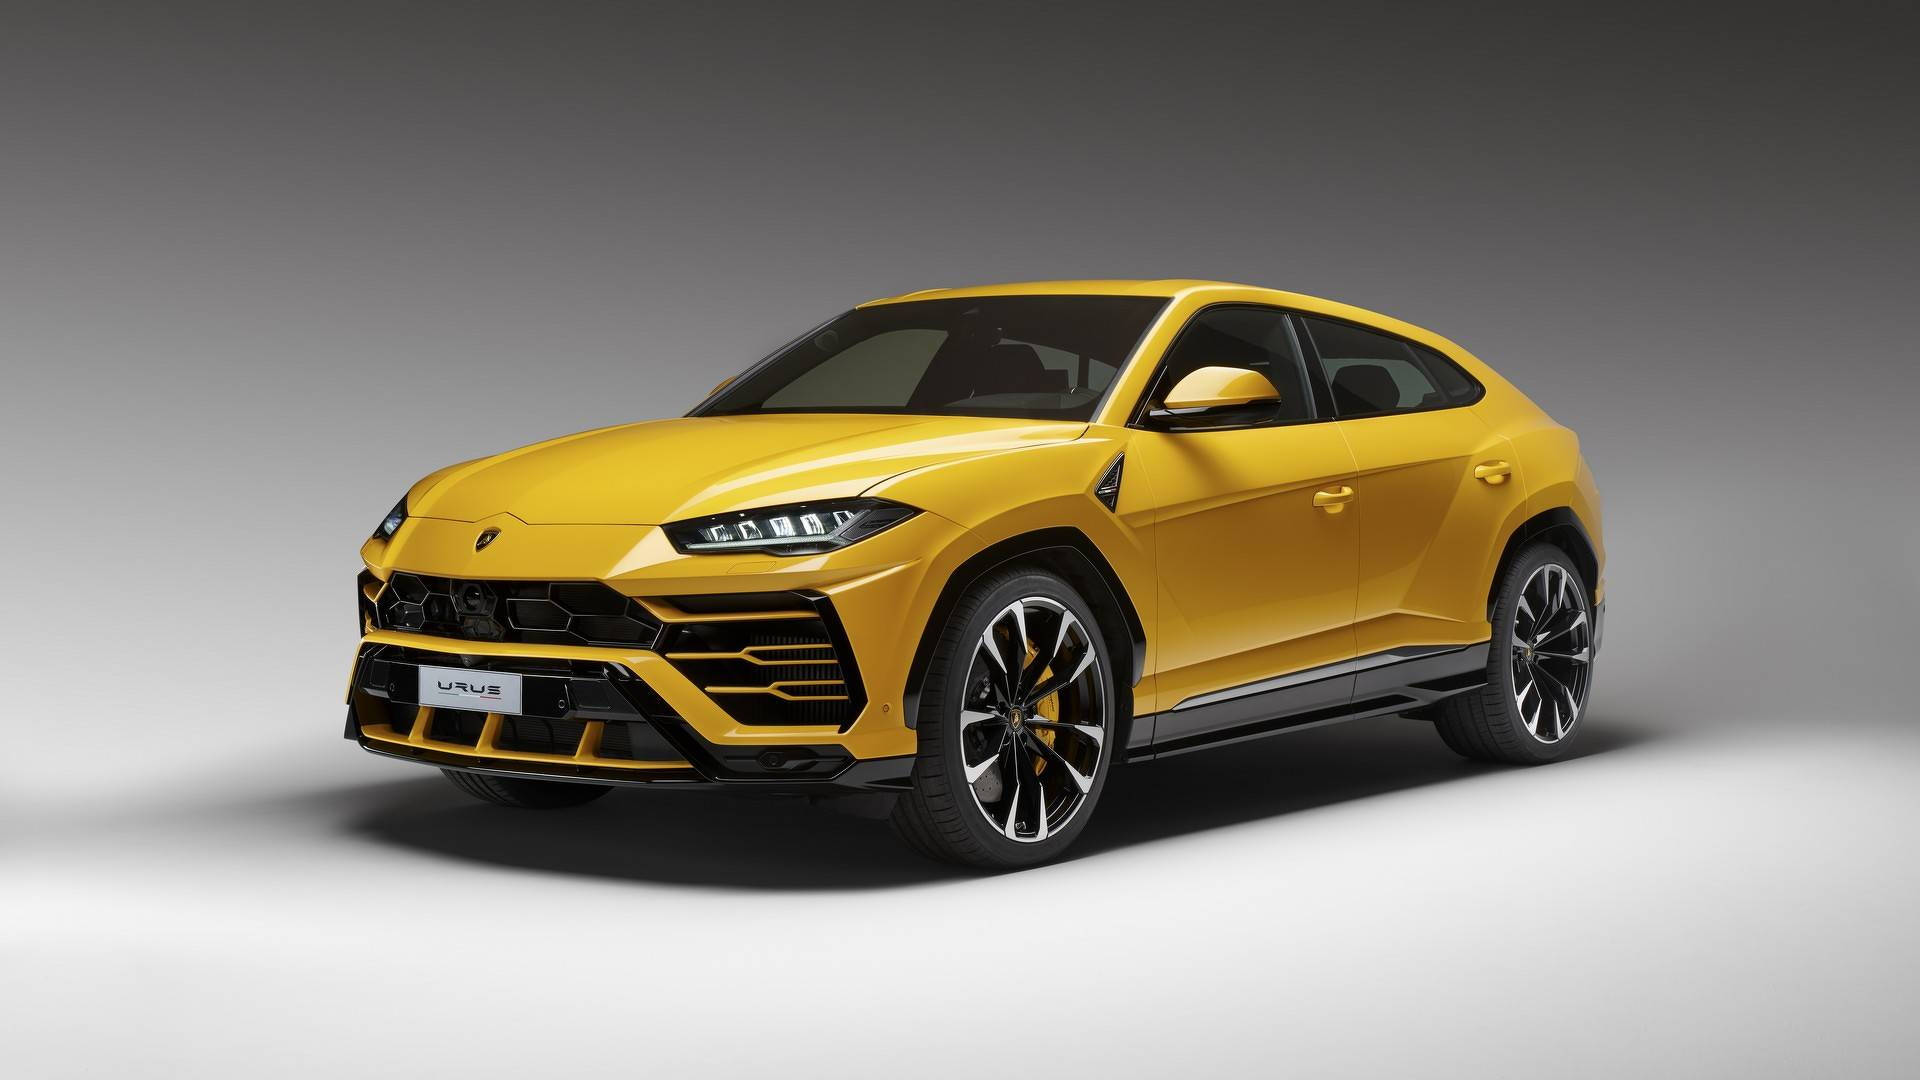 Lamborghini Urus News And Reviews Motor1 Com